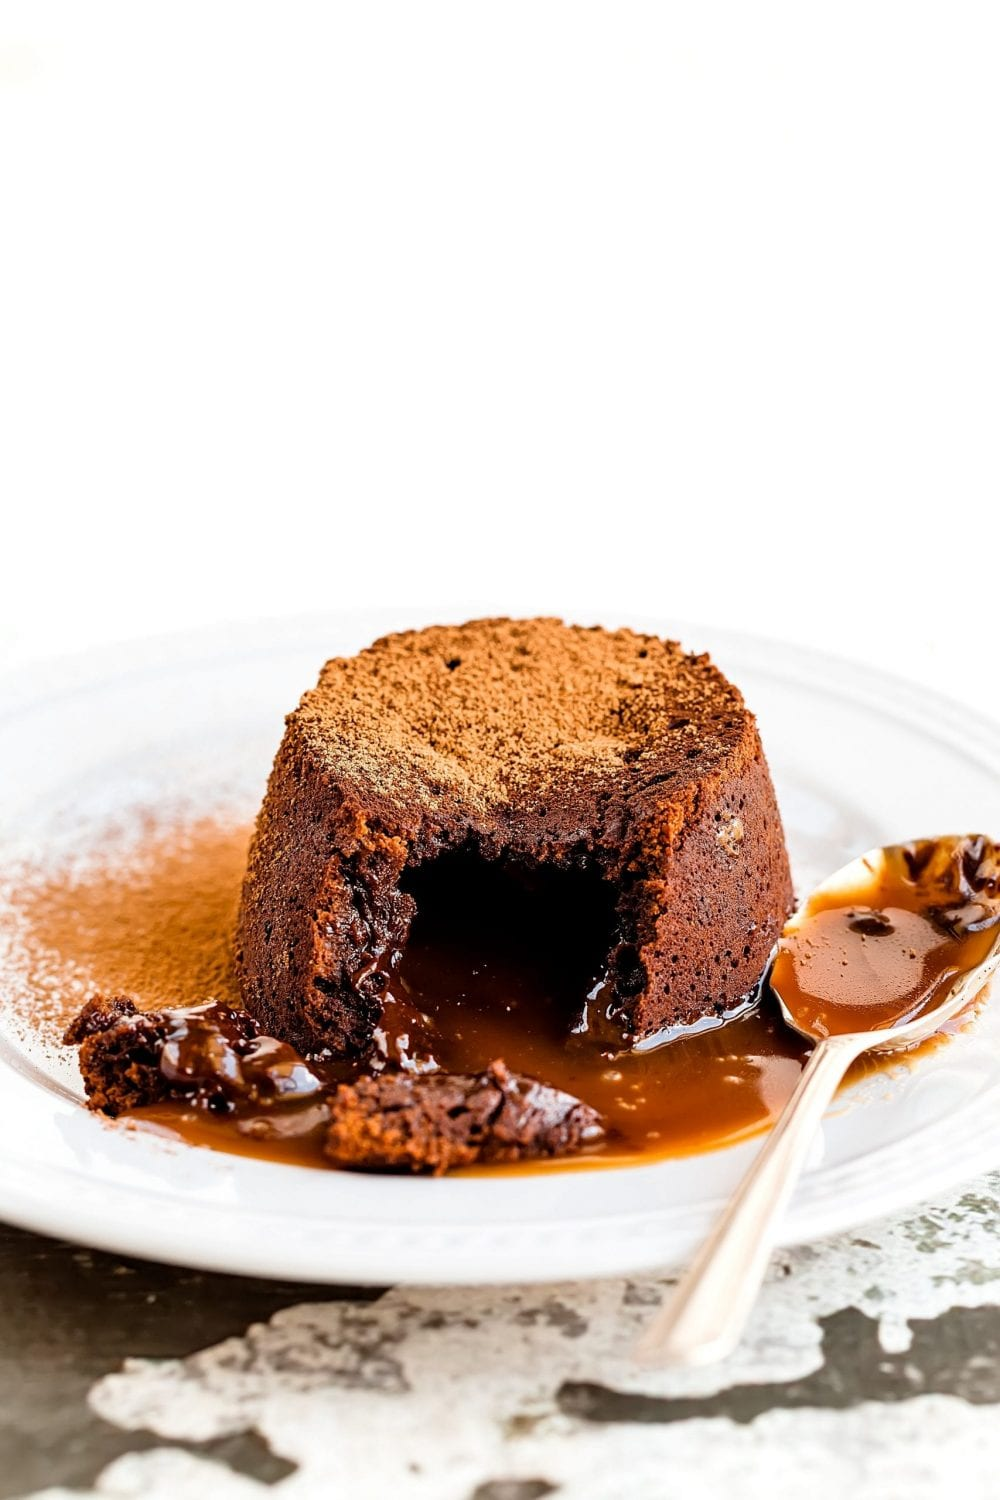 Cannabis infused lava cake on a white plate With a spoon for sale on the plate the lava cake has been cut open and is spilling onto the plate with brown powder in the back